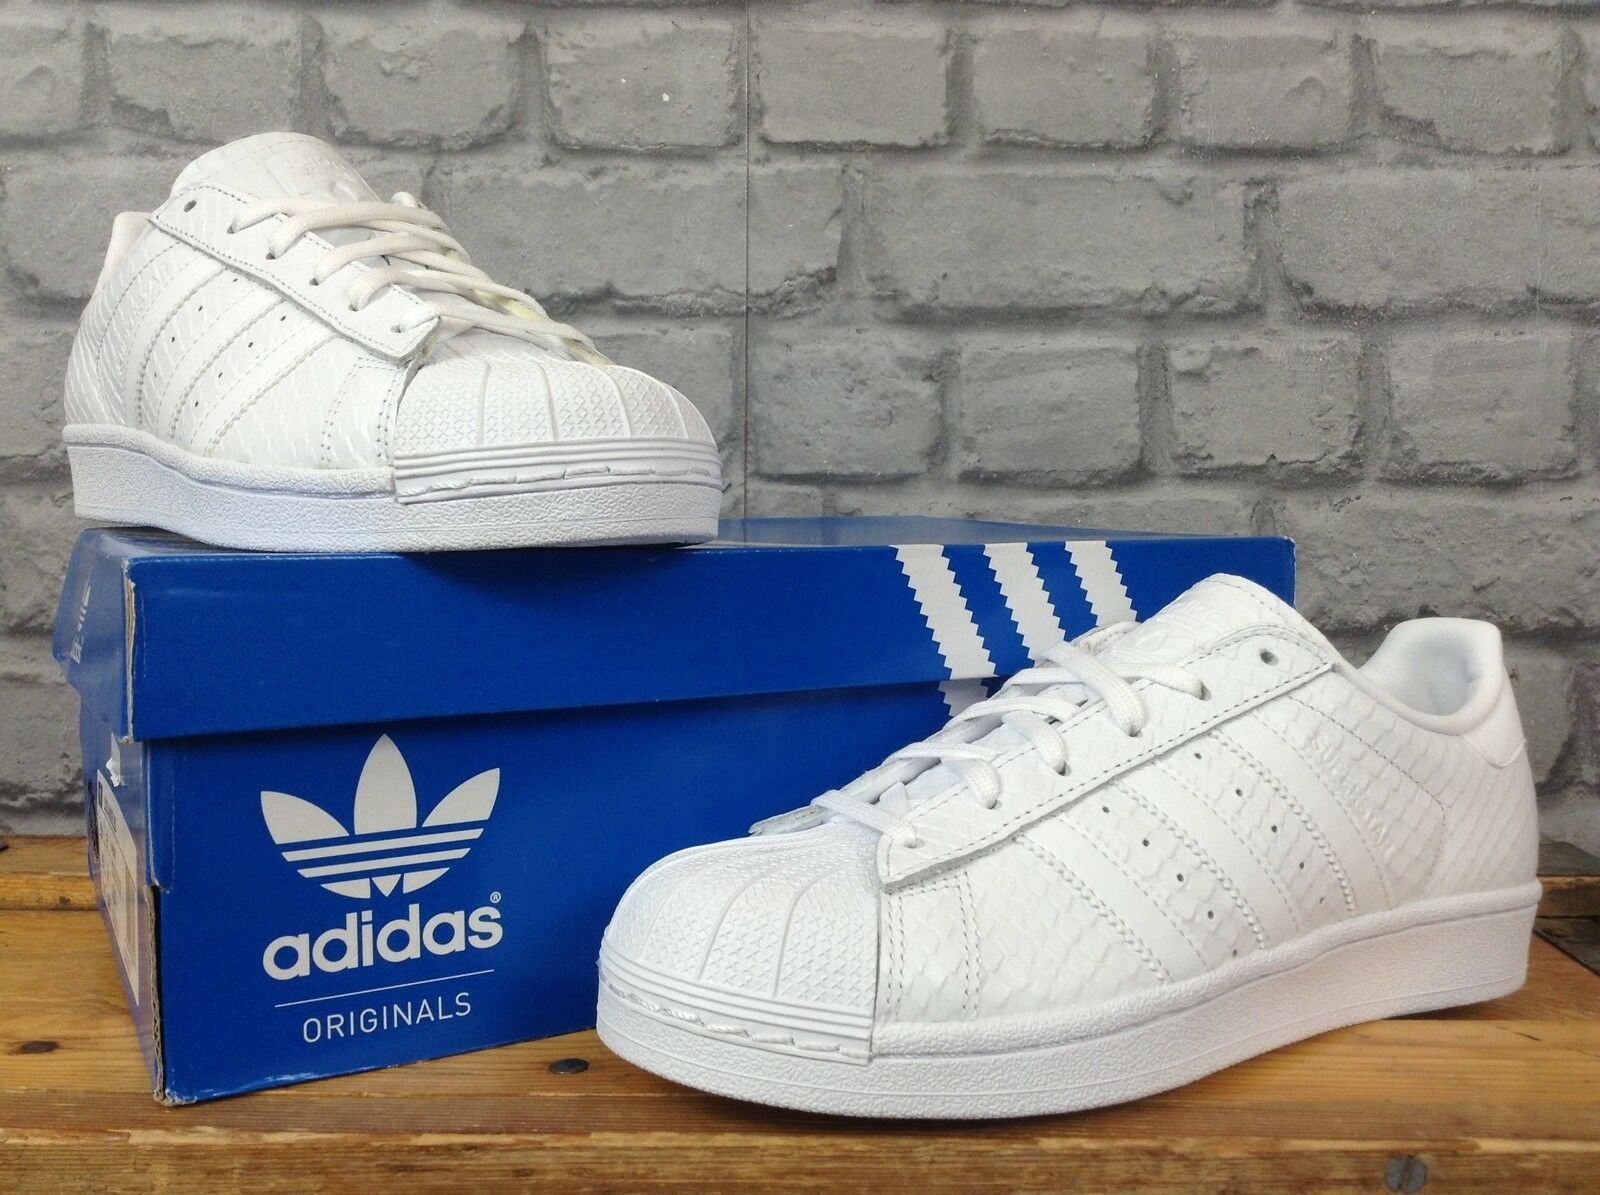 ADIDAS LADIES UK 5 EU 38 WEISS SUPERSTAR SNAKE TRAINERS